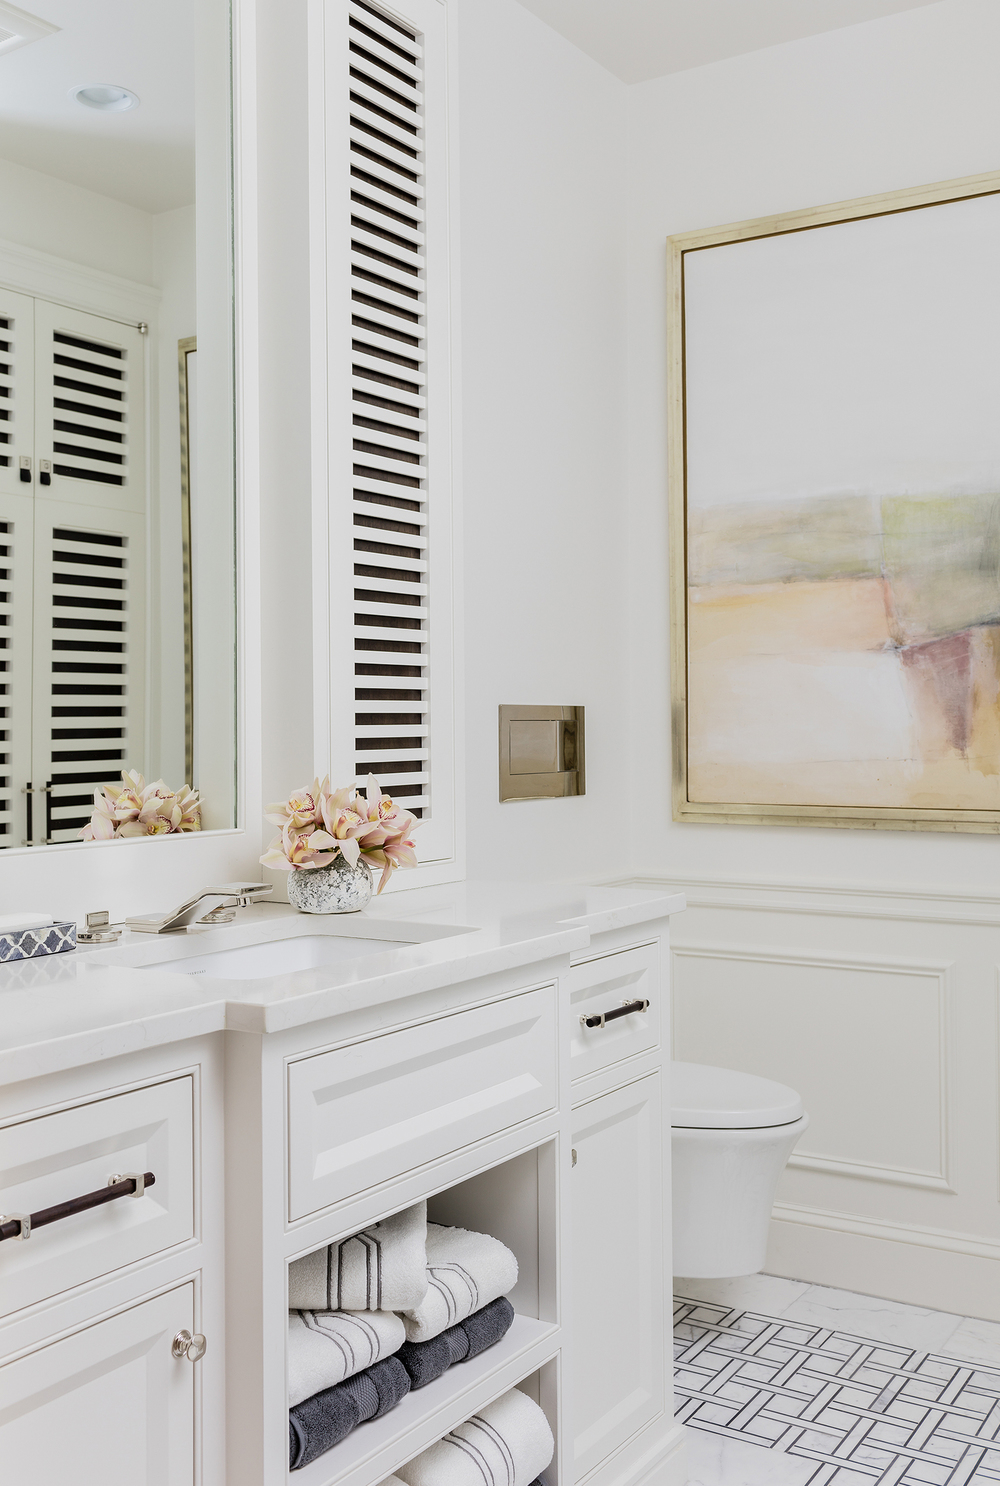 nicole hogarty designs The Best Projects By Nicole Hogarty Designs 6